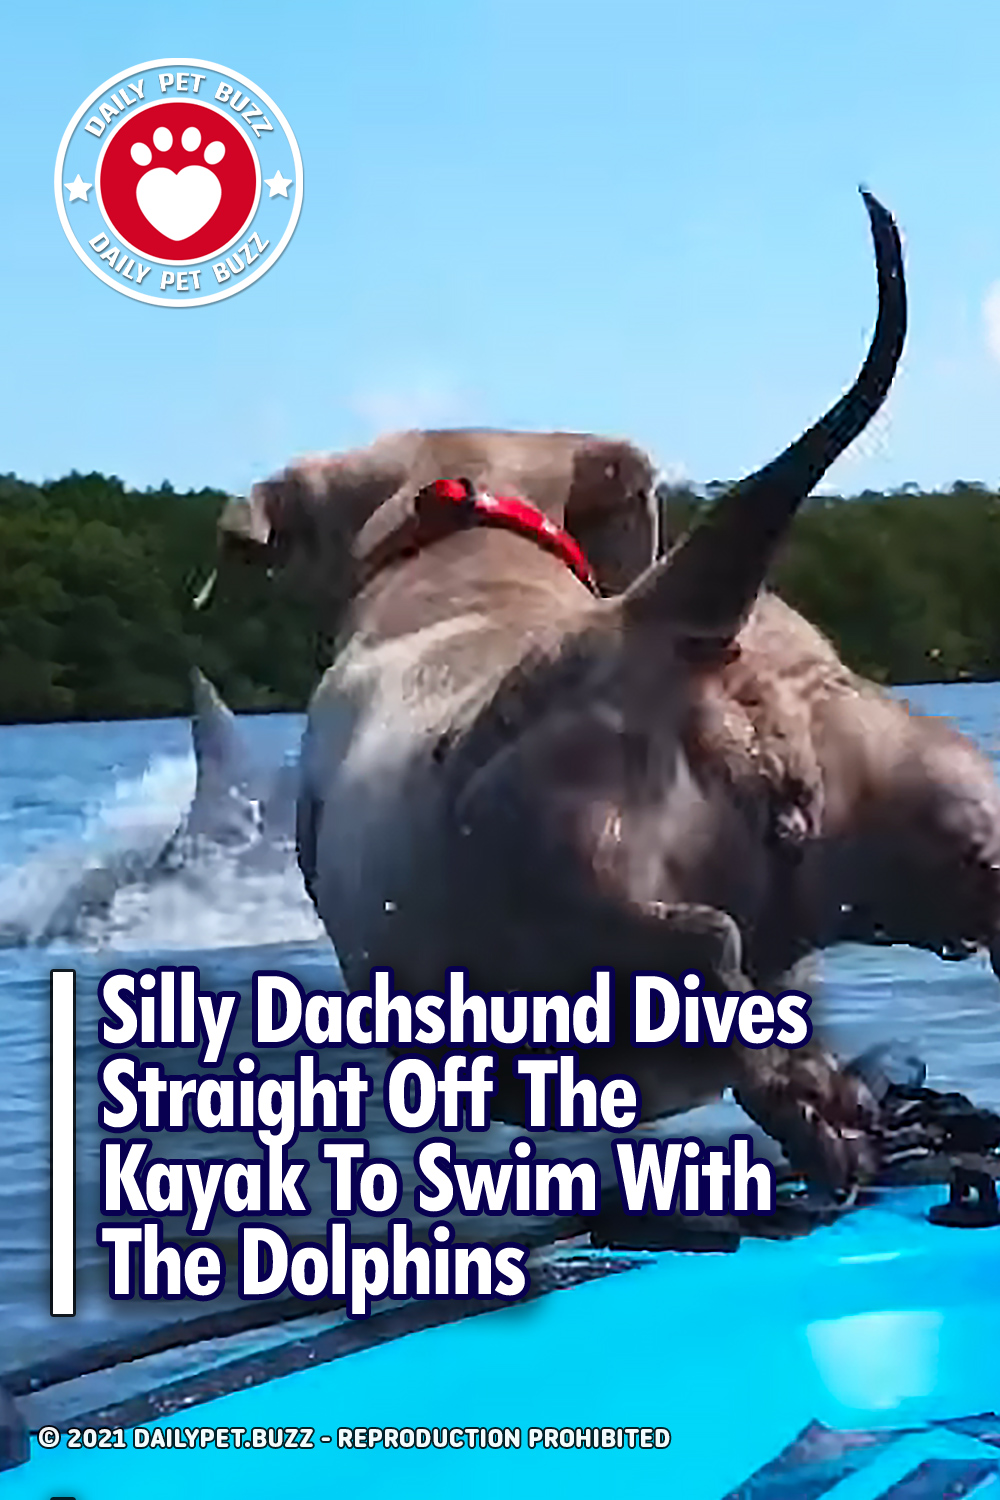 Silly Dachshund Dives Straight Off The Kayak To Swim With The Dolphins